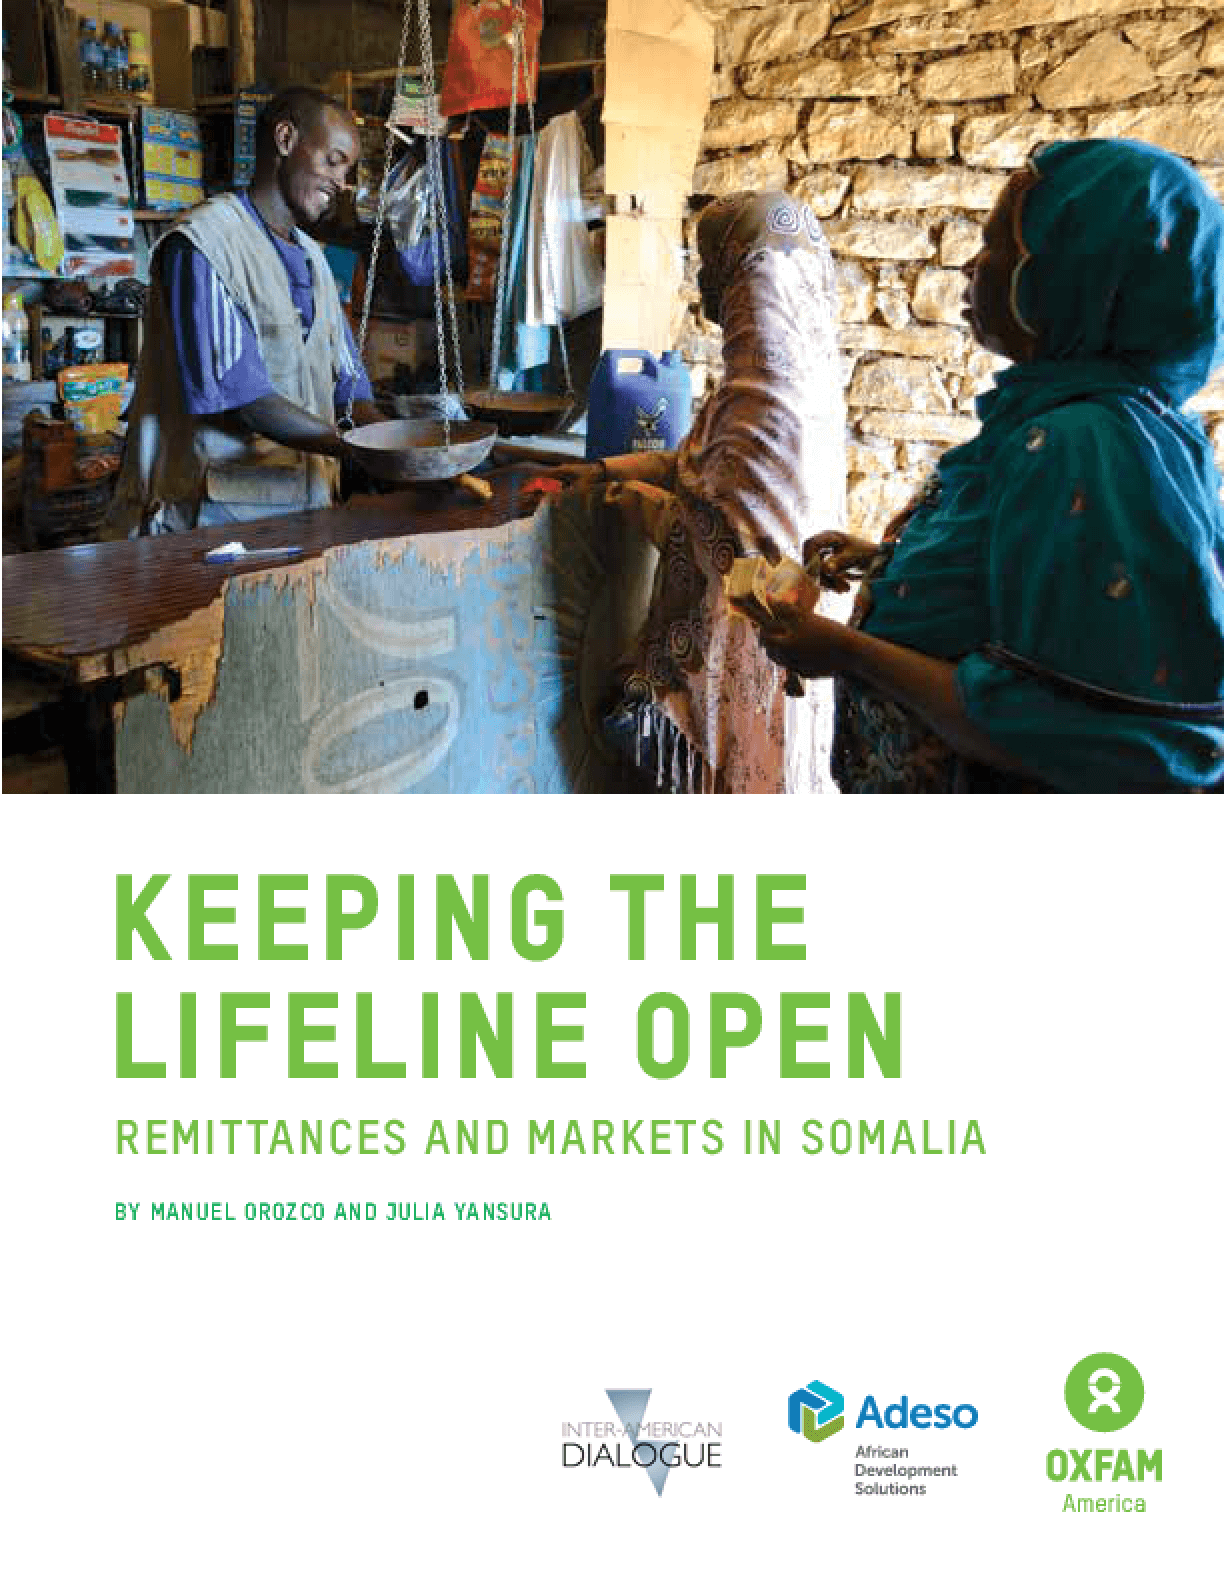 Keeping the Lifeline Open: Remittances and Markets in Somalia